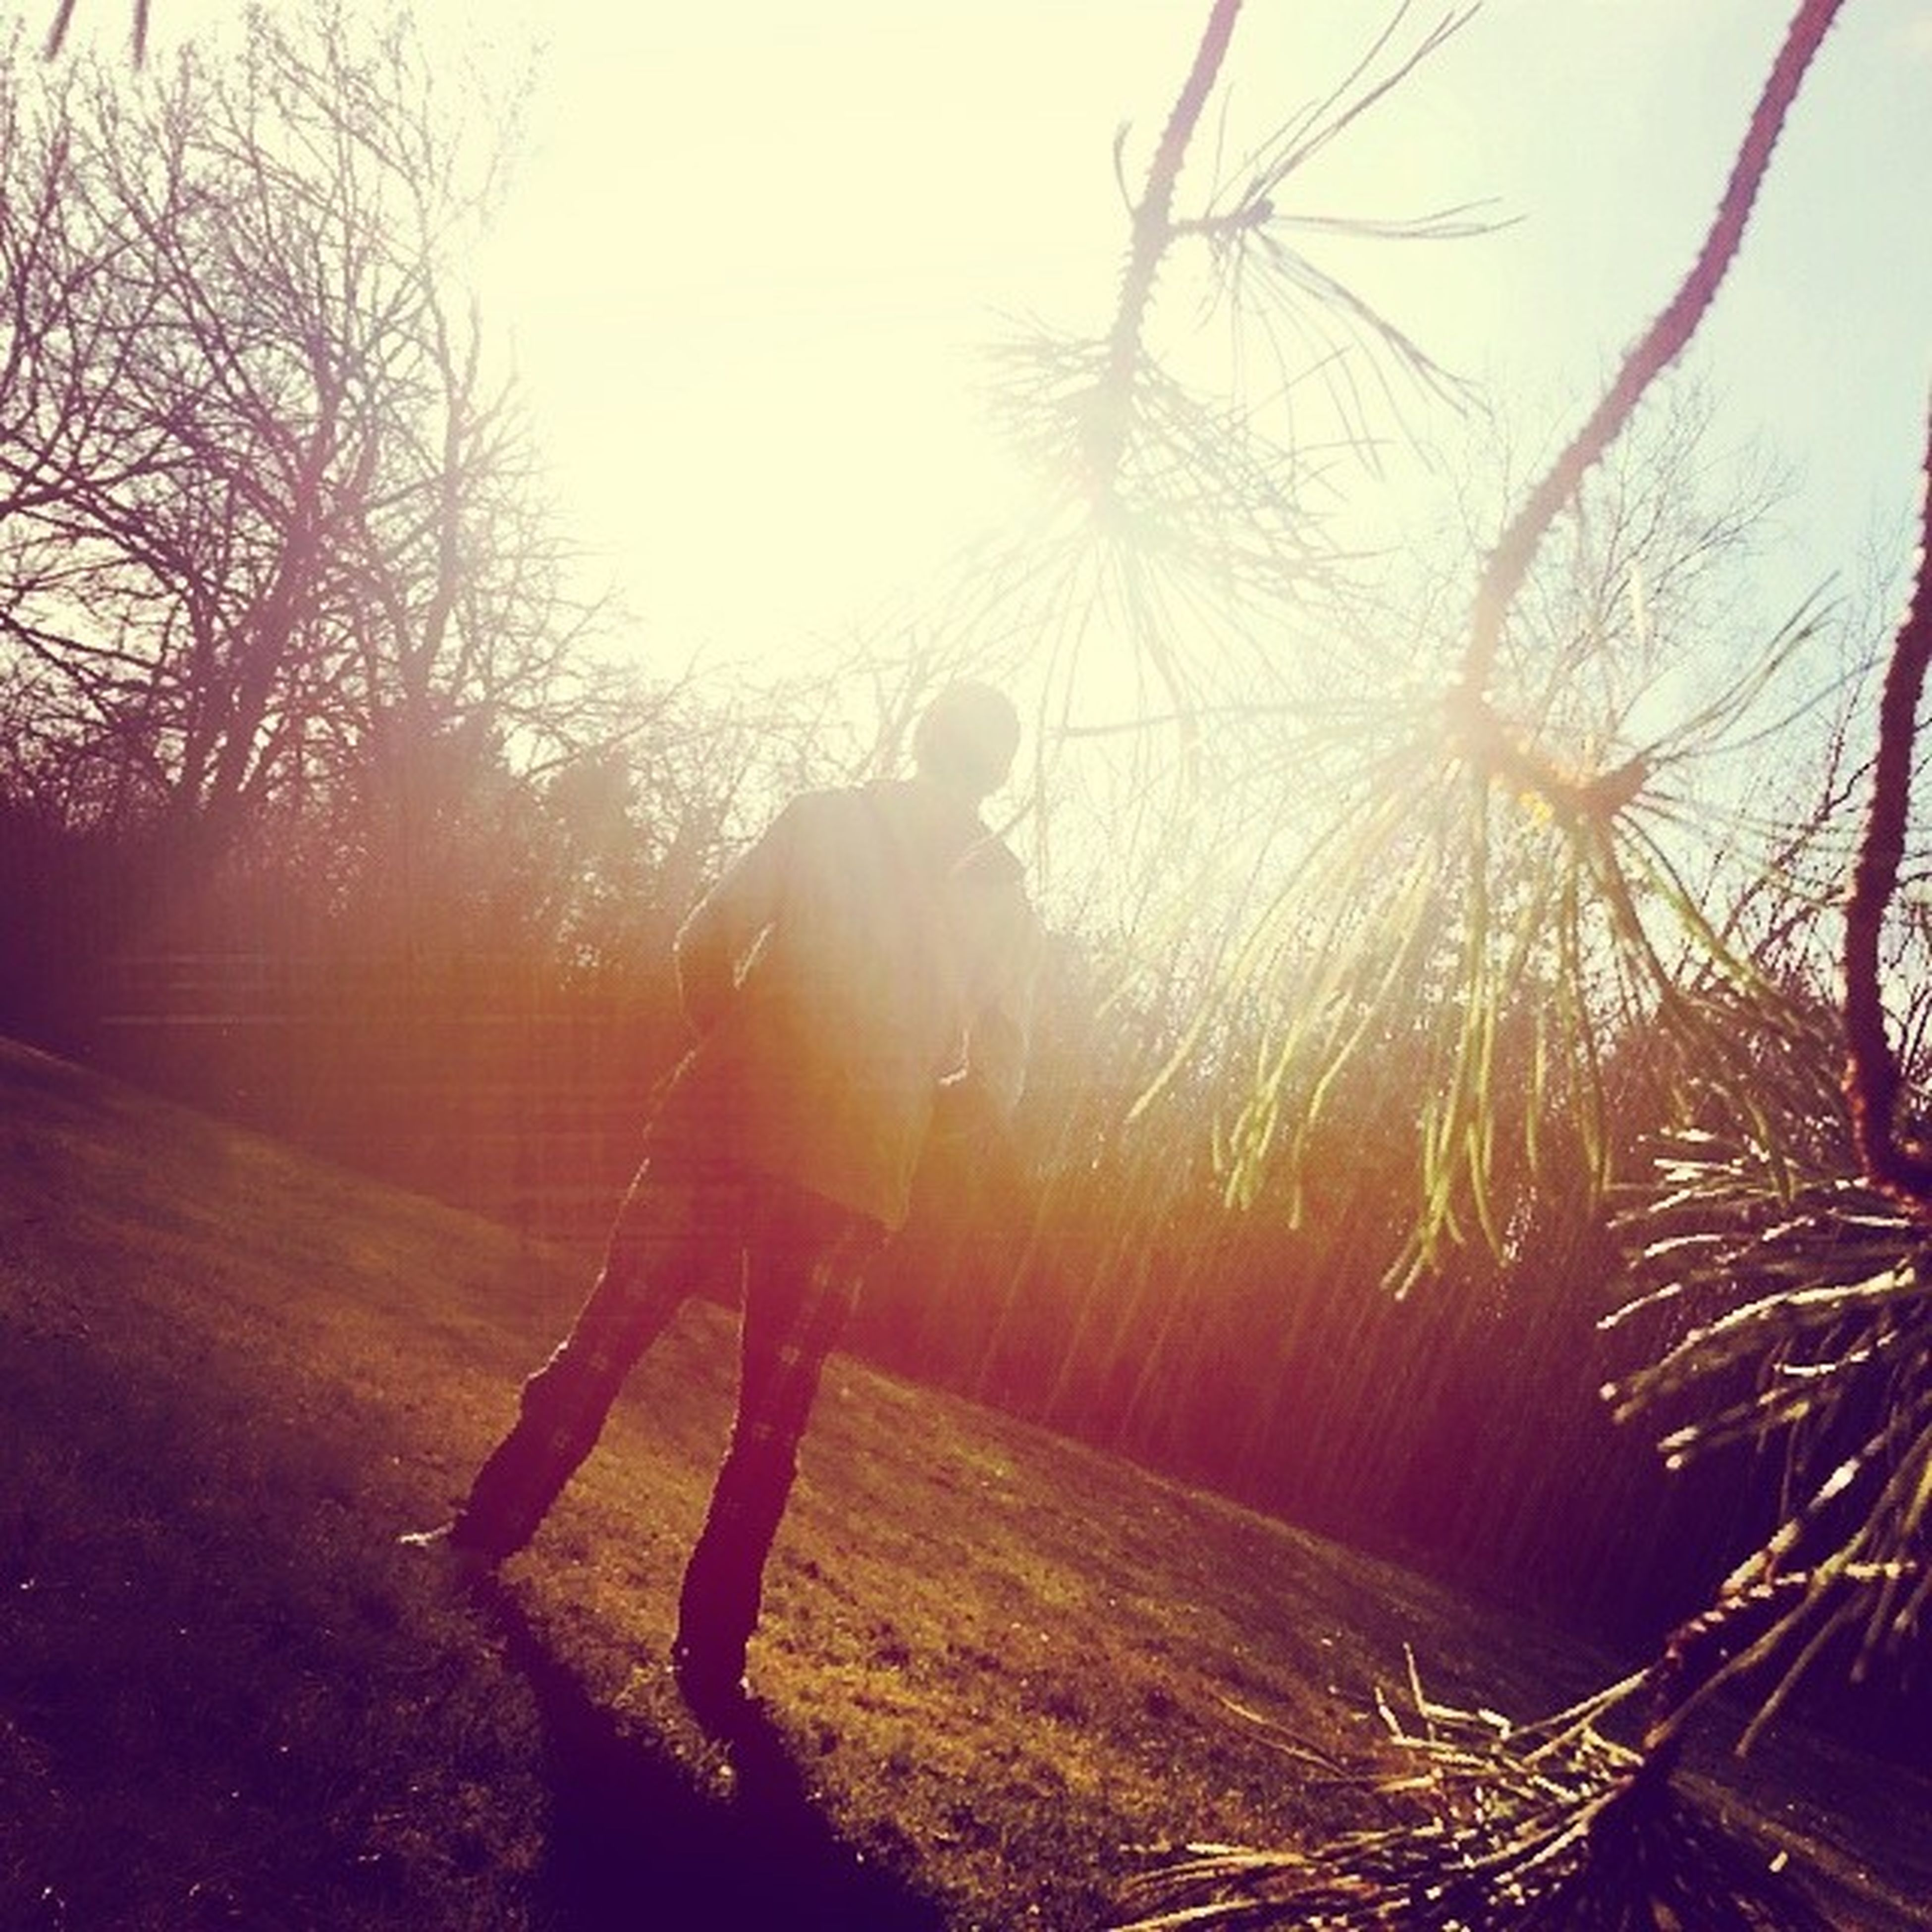 lifestyles, leisure activity, field, grass, sunbeam, sun, tree, sunlight, standing, full length, lens flare, rear view, nature, landscape, outdoors, person, plant, walking